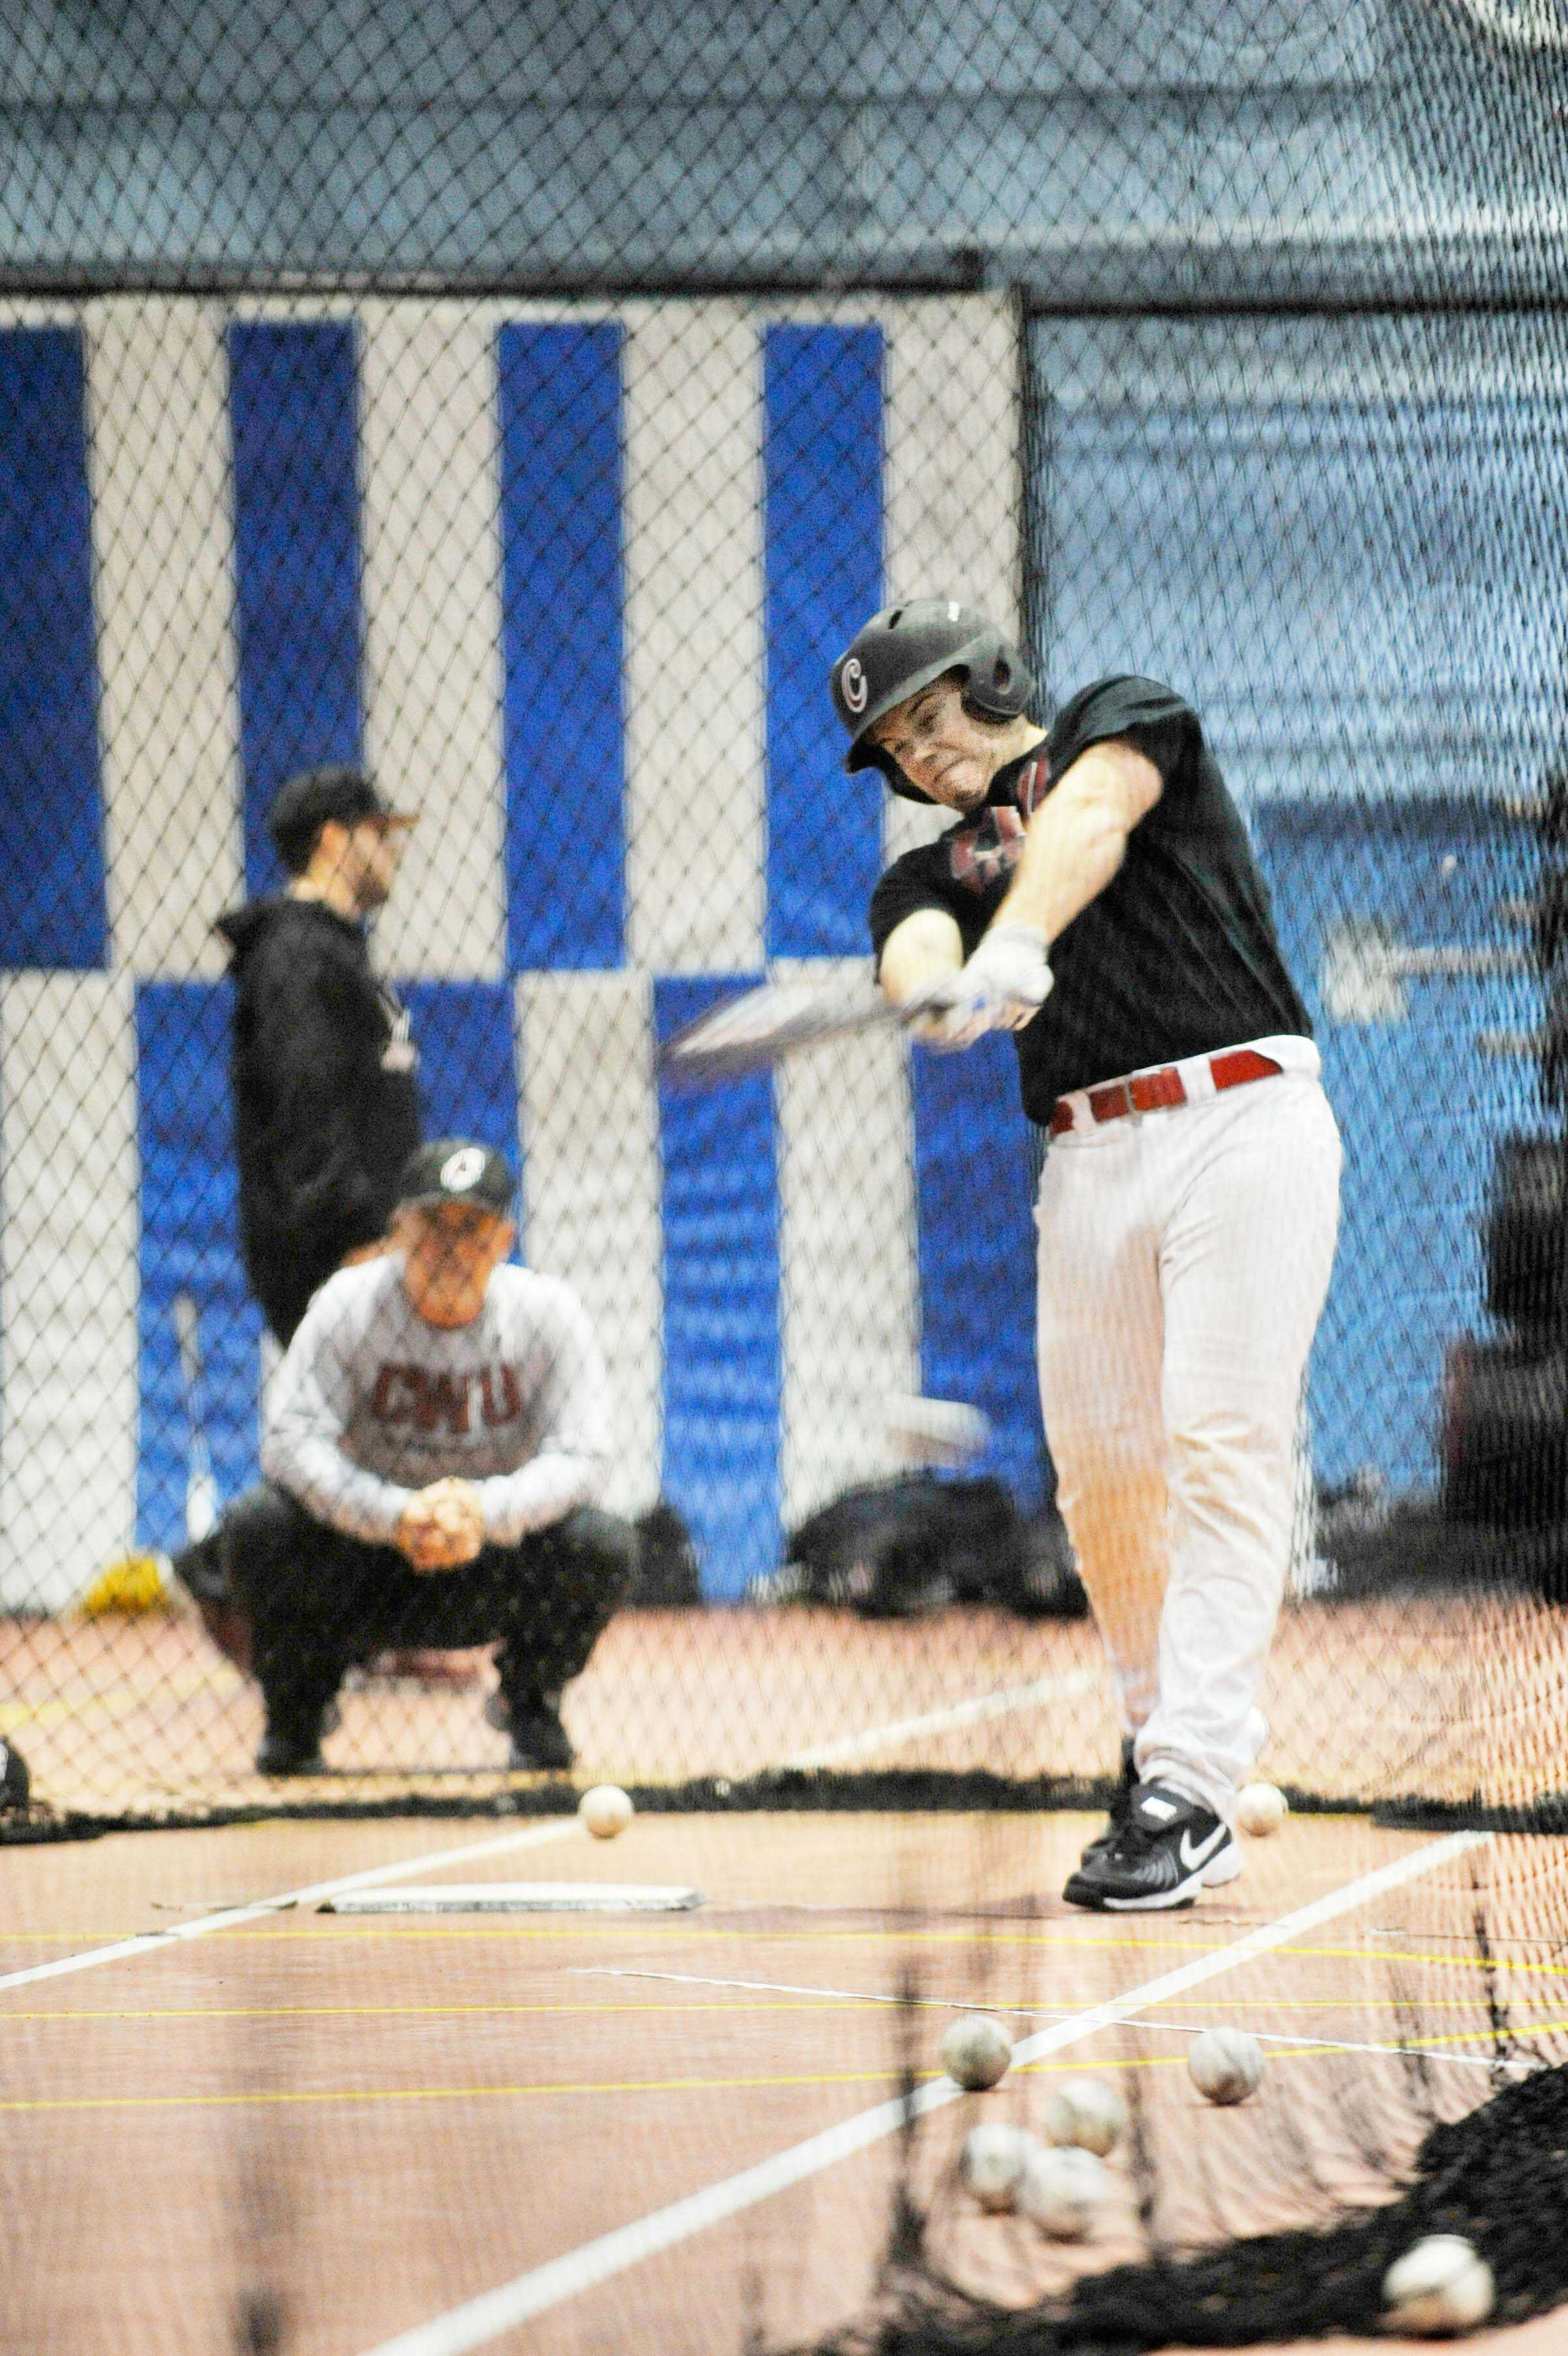 CWU freshman catcher Jesse Unger takes batting practice during an indoor sessions.